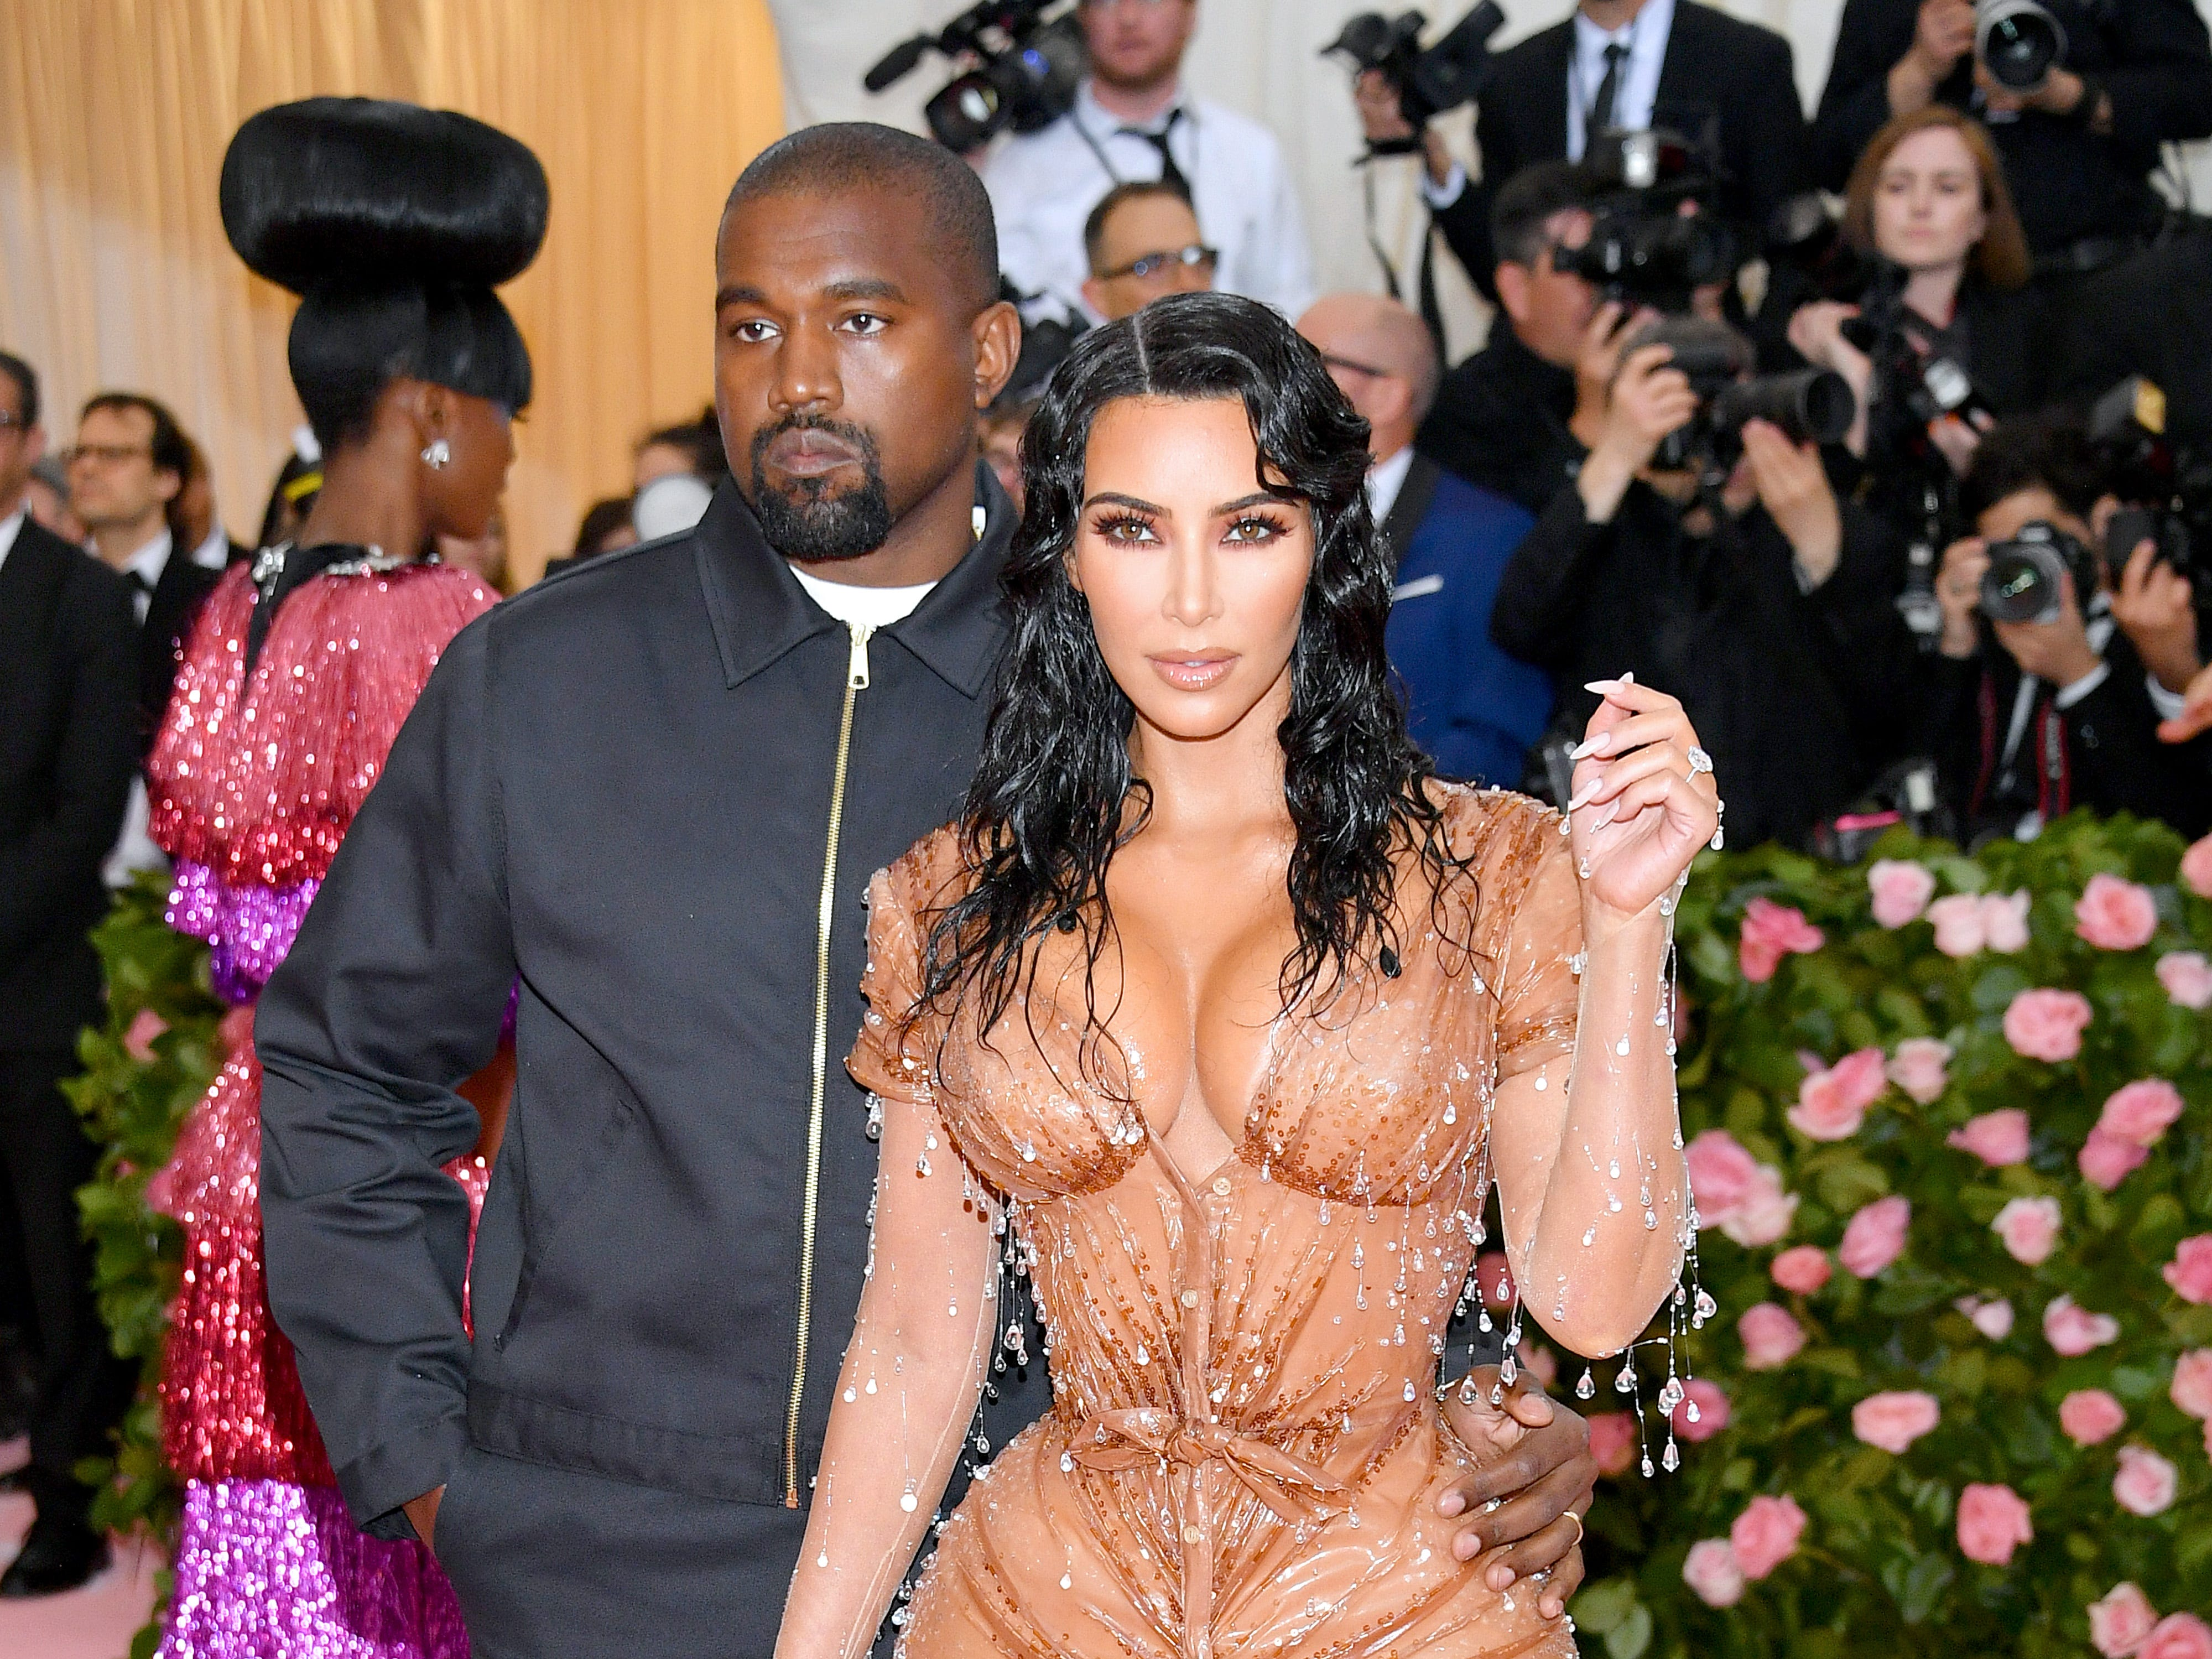 NEW YORK, NEW YORK - MAY 06: Kanye West and Kim Kardashian attend The 2019 Met Gala Celebrating Camp: Notes on Fashion at Metropolitan Museum of Art on May 06, 2019 in New York City. (Photo by Dia Dipasupil/FilmMagic) ORG XMIT: 775333959 ORIG FILE ID: 1147427493